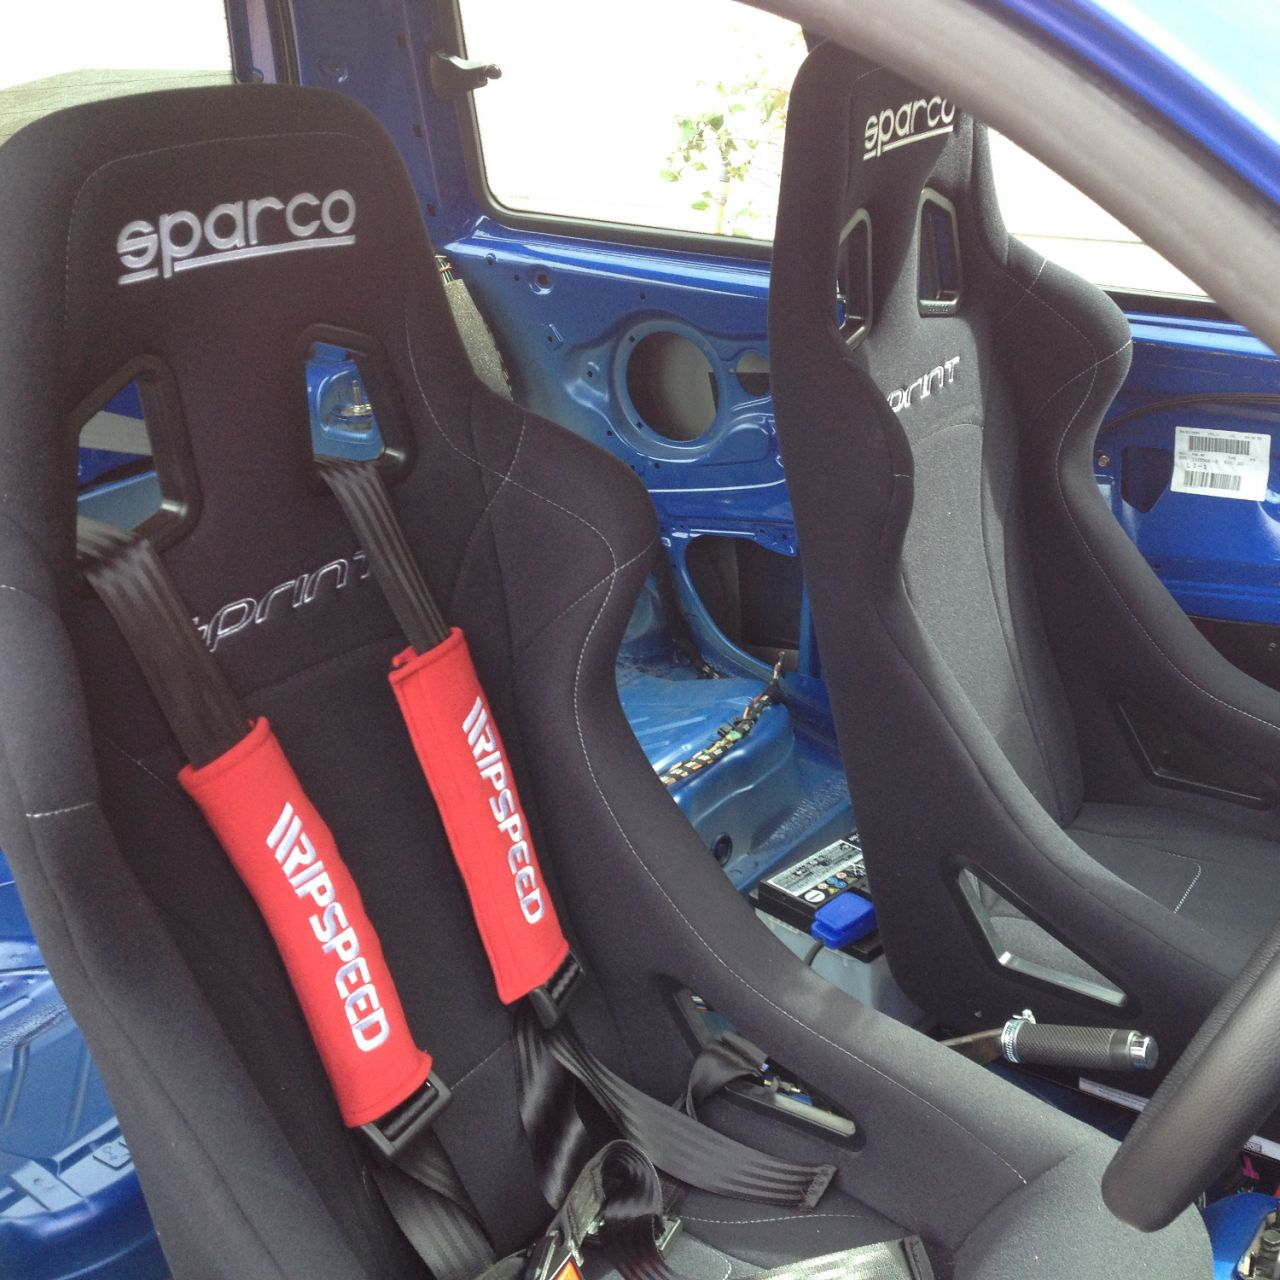 Sparco Sprint Volkswagen Polo MkI Package